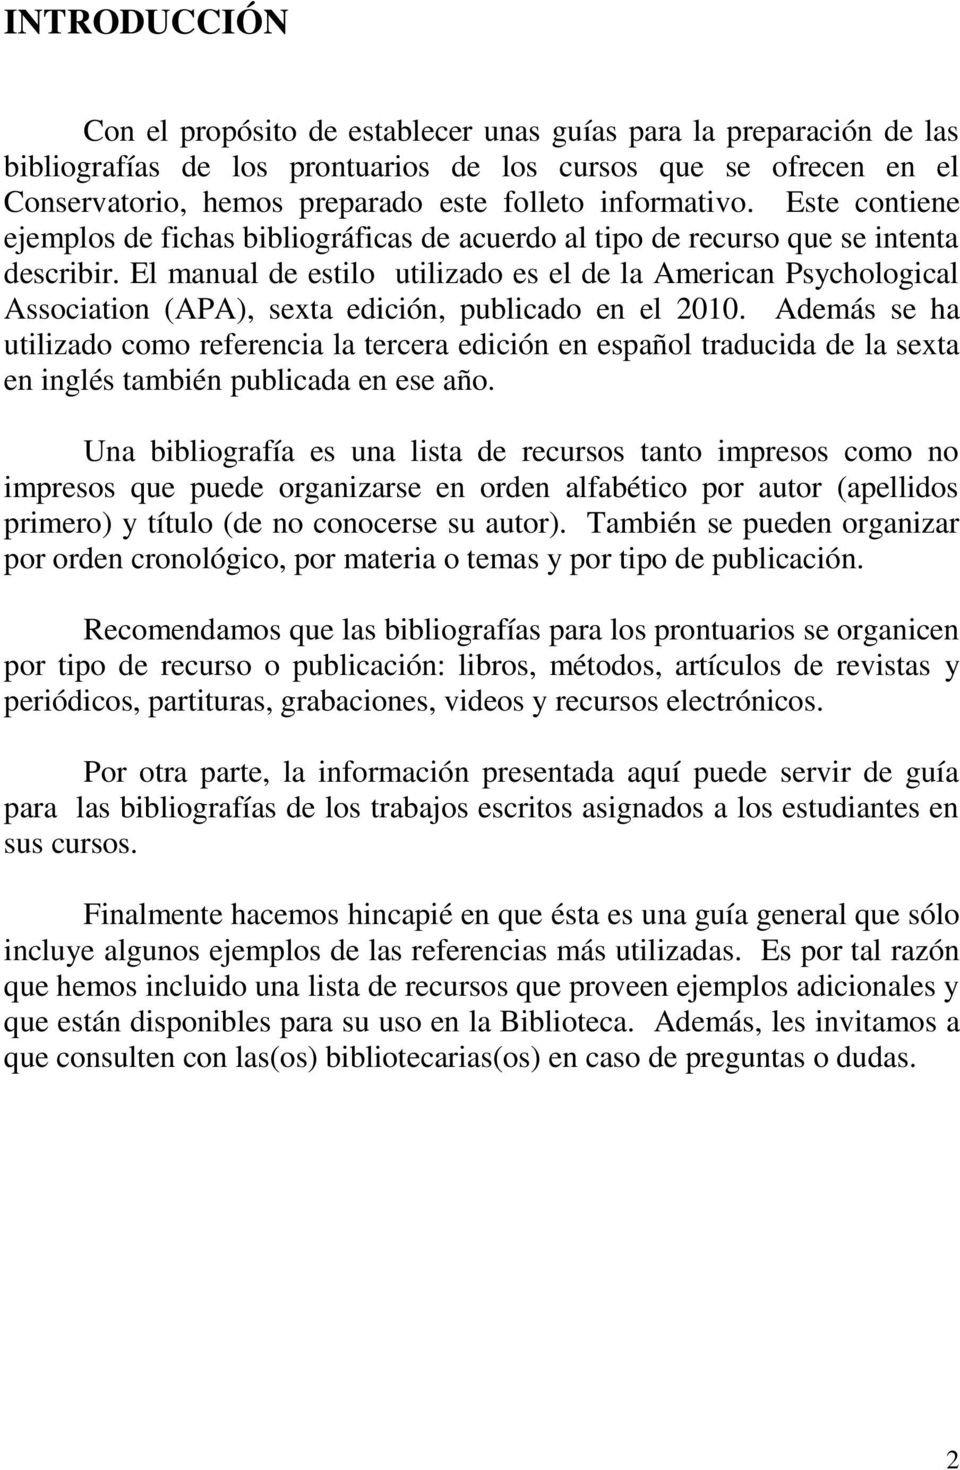 El manual de estilo utilizado es el de la American Psychological Association (APA), sexta edición, publicado en el 2010.